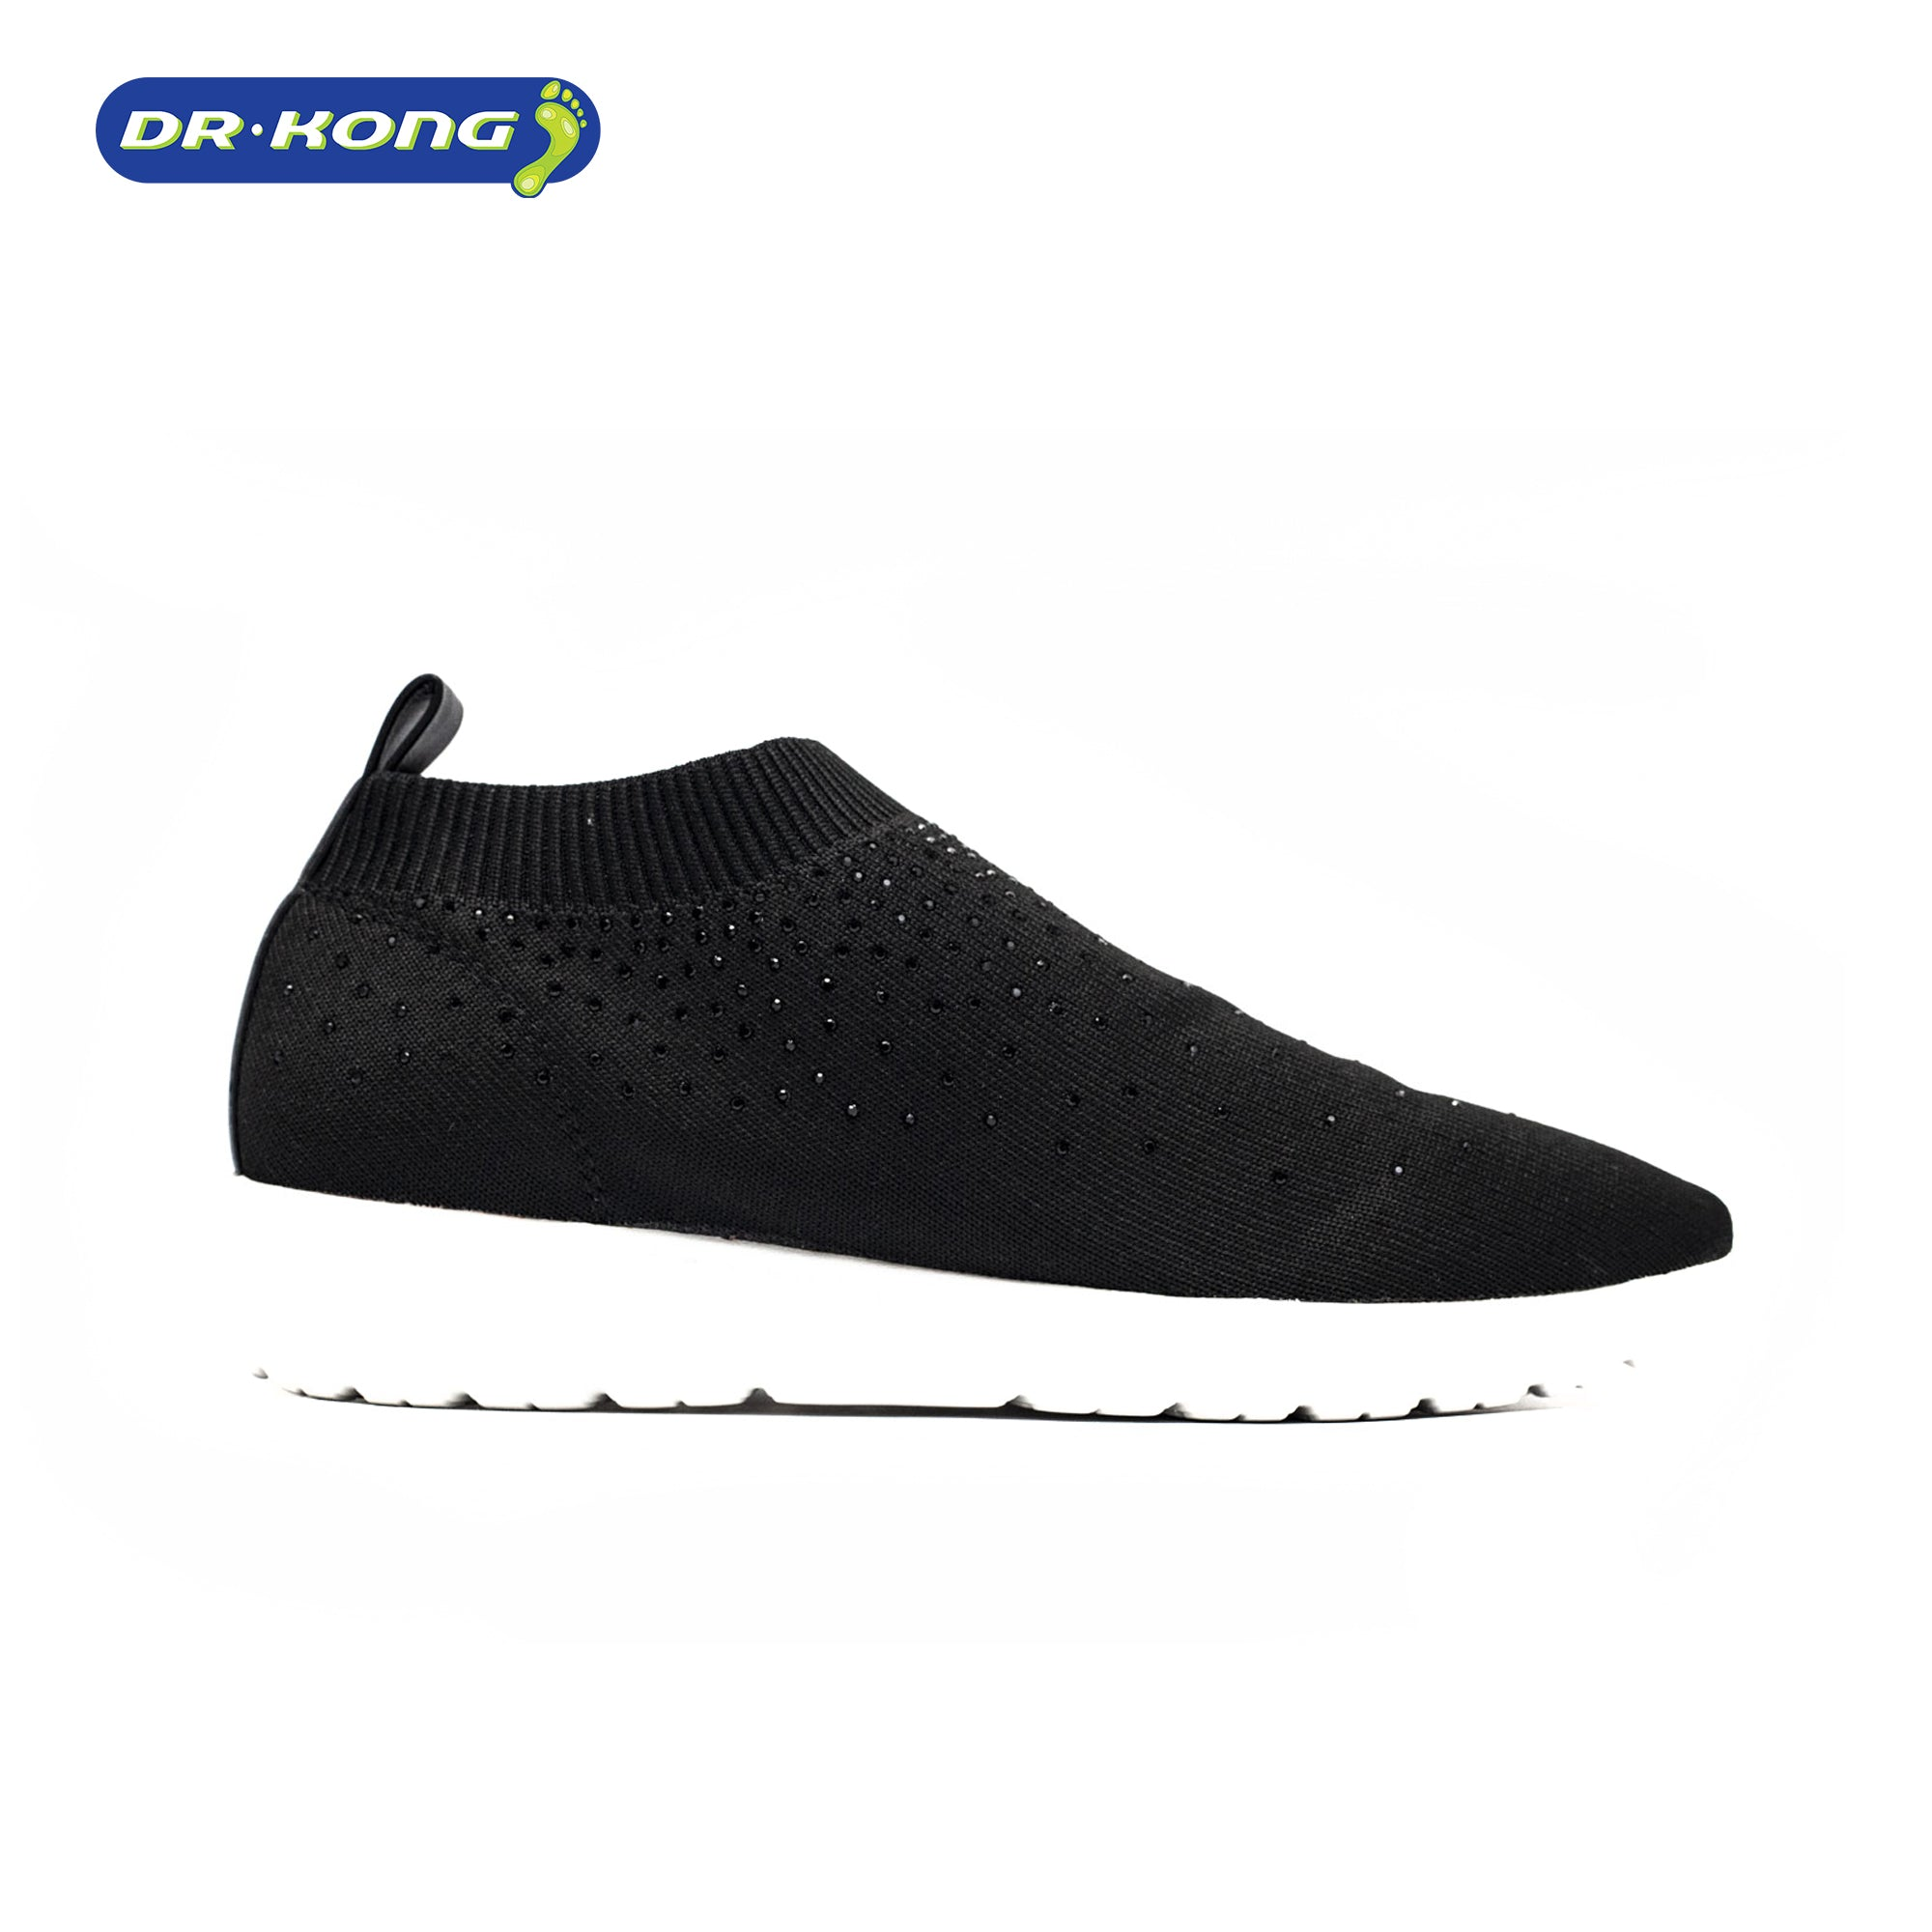 Dr. Kong Orthoknit Womens Sneakers (Black) W5000615